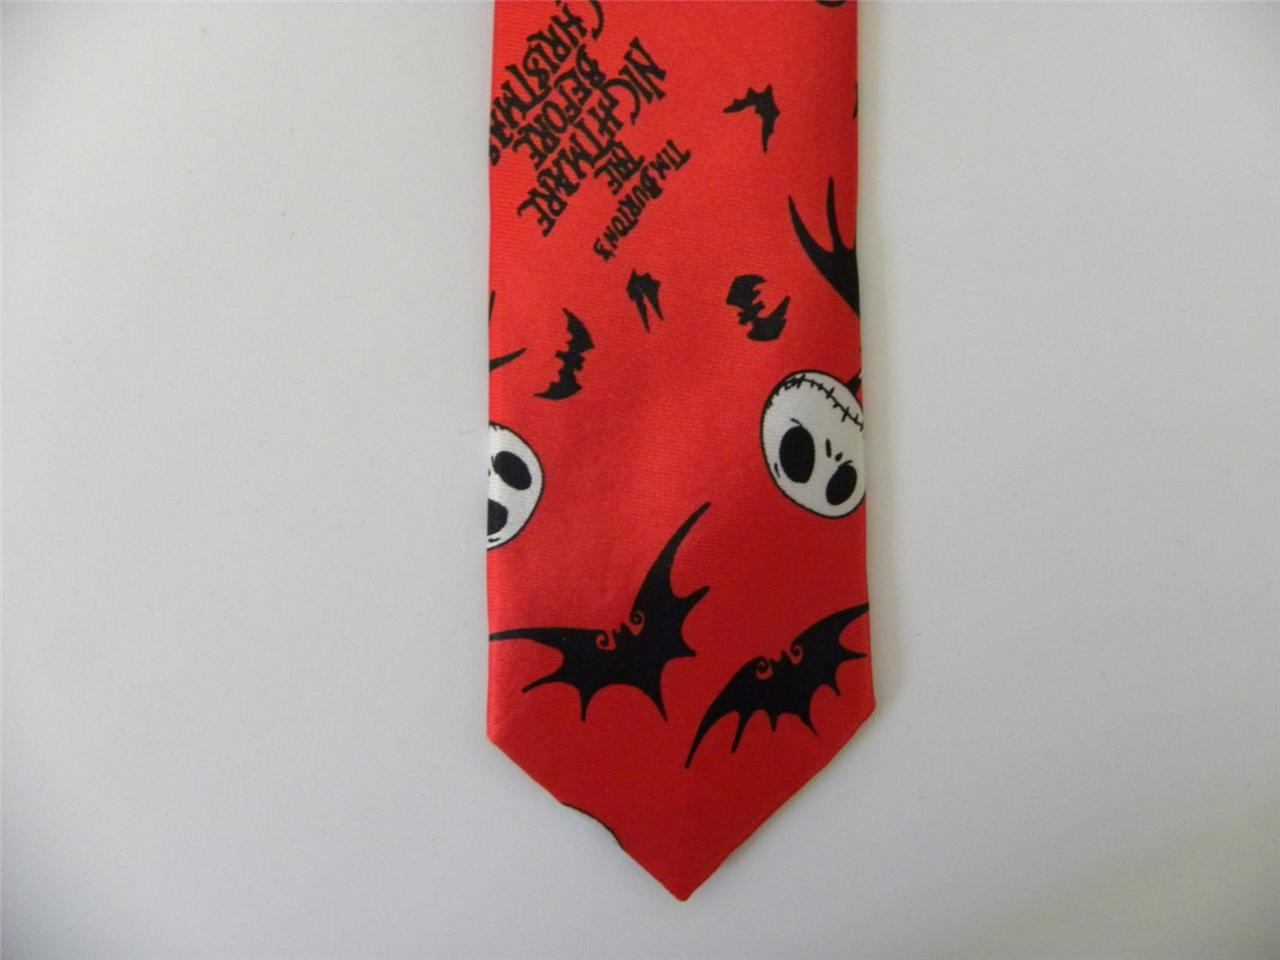 Details about nightmare before christmas skinny tie red necktie bats ...